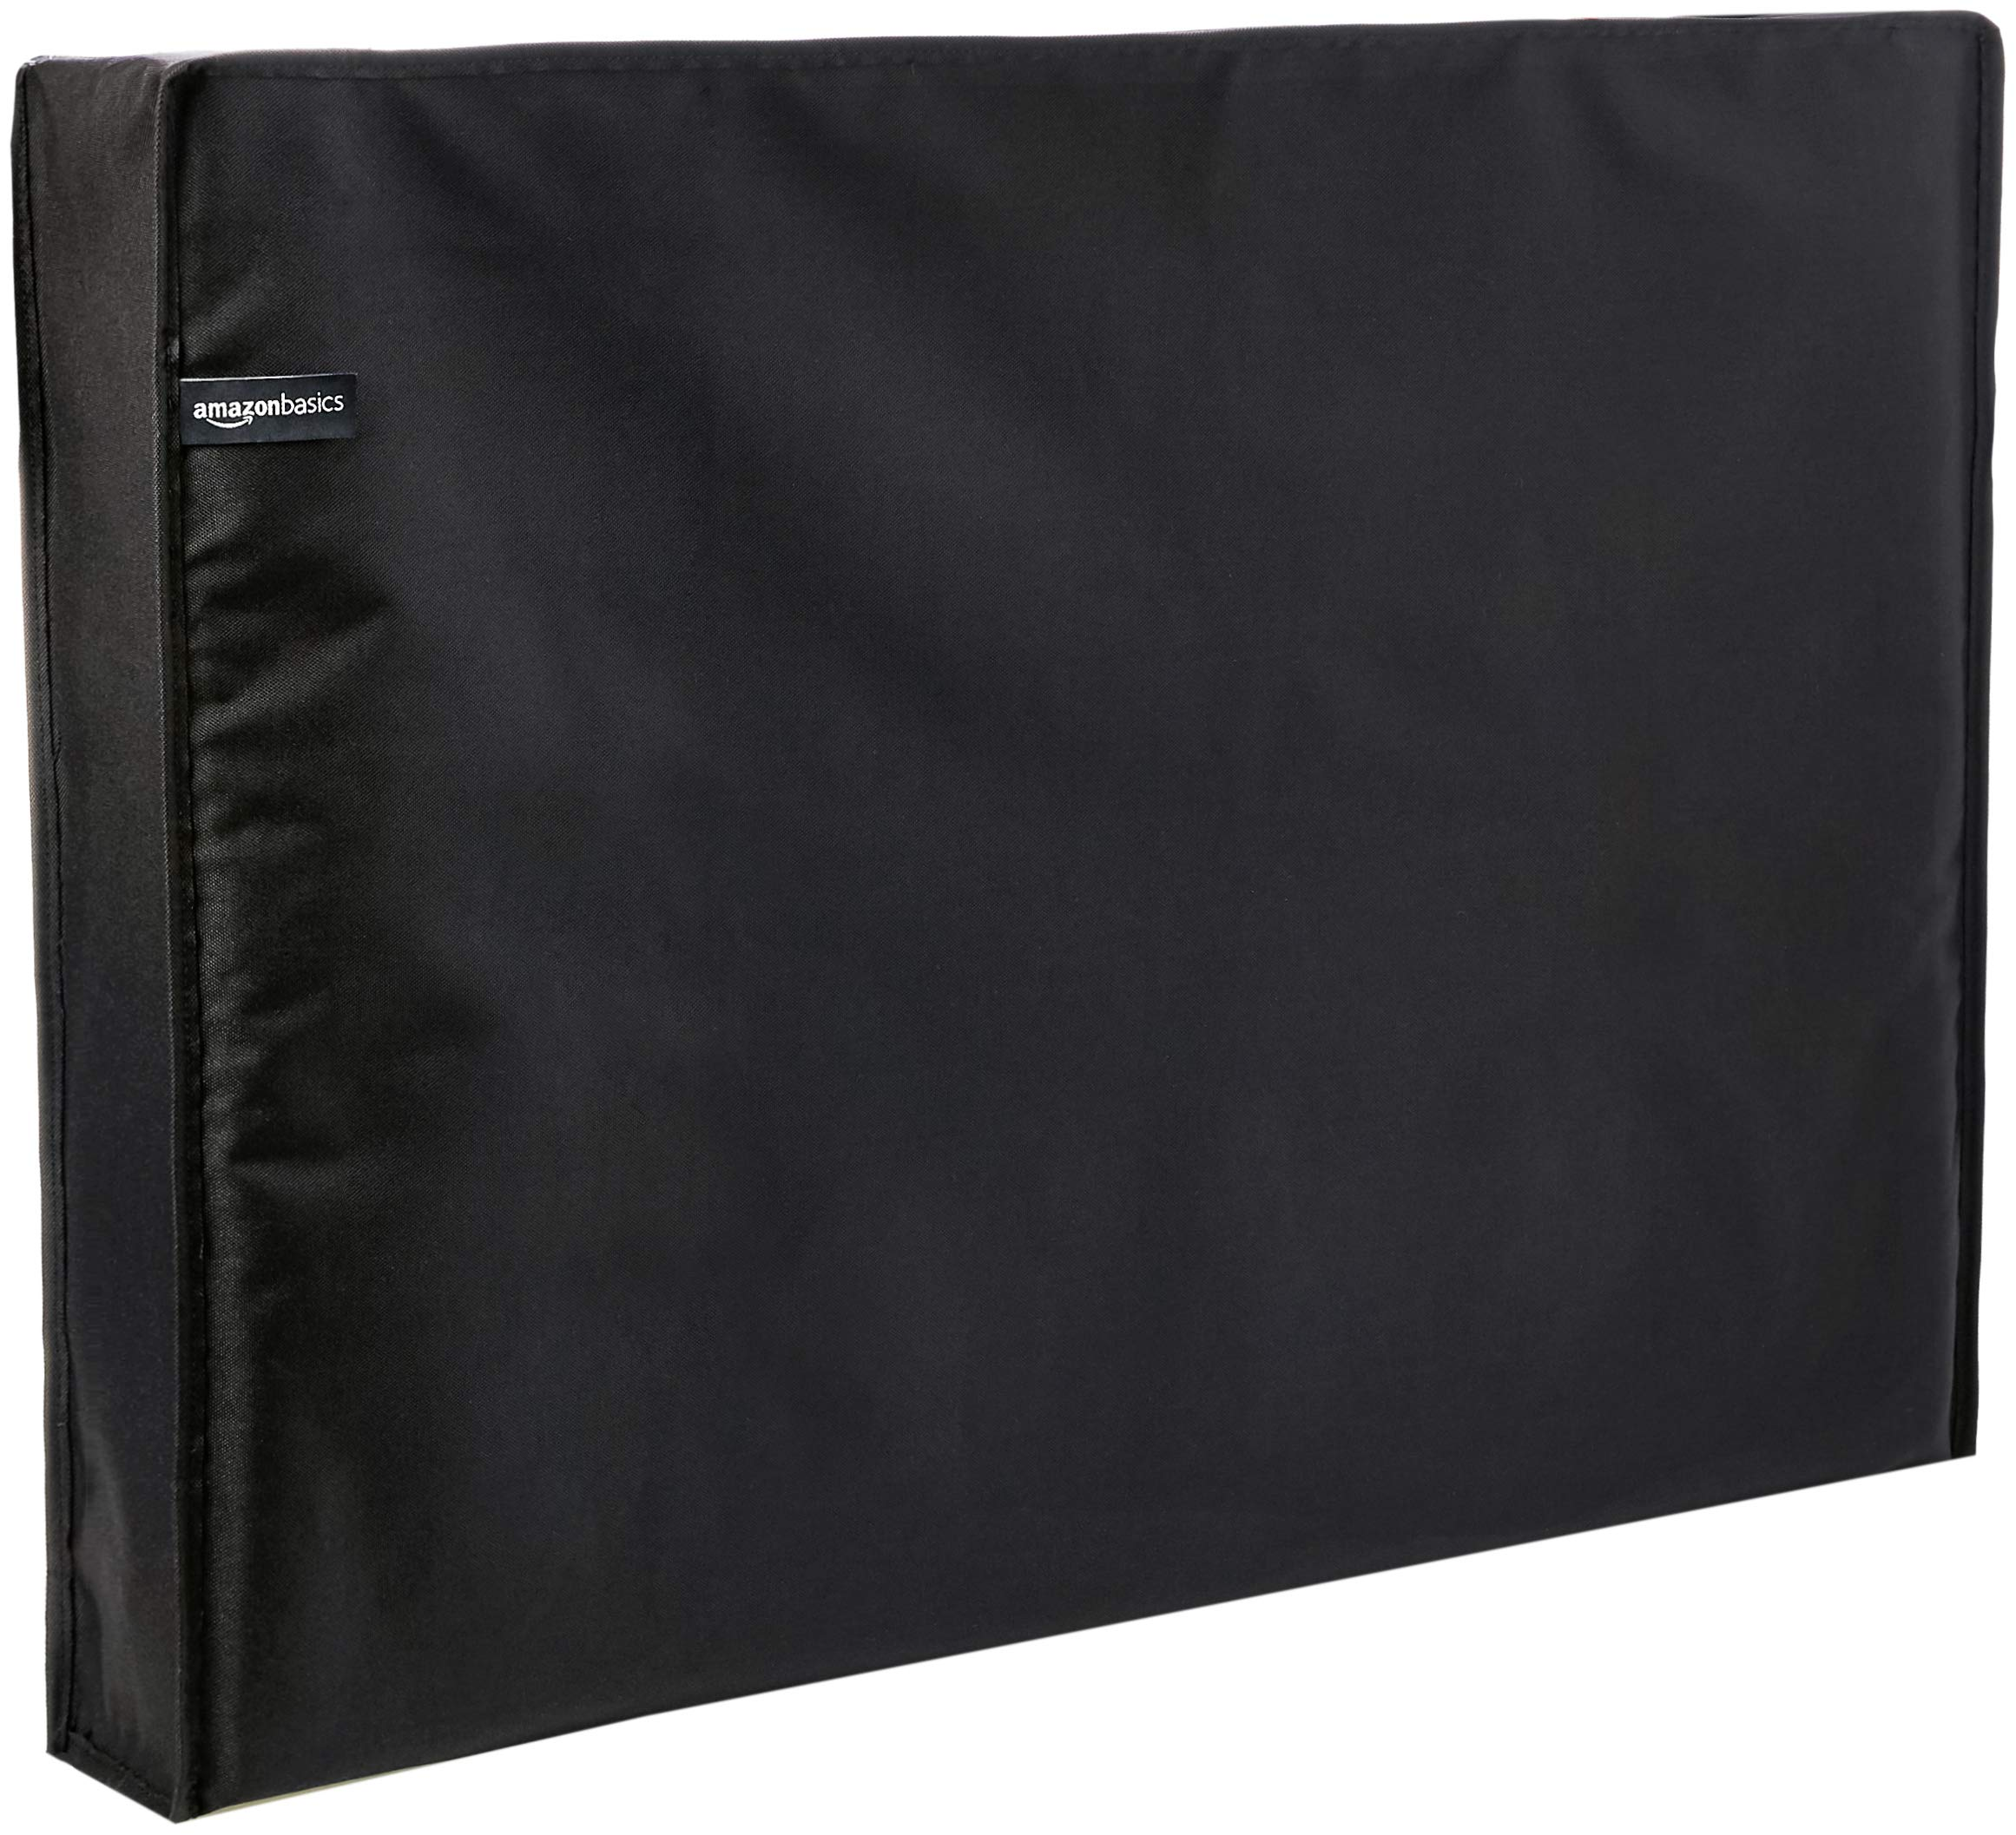 AmazonBasics Outdoor TV Cover - 40 to 42 inches